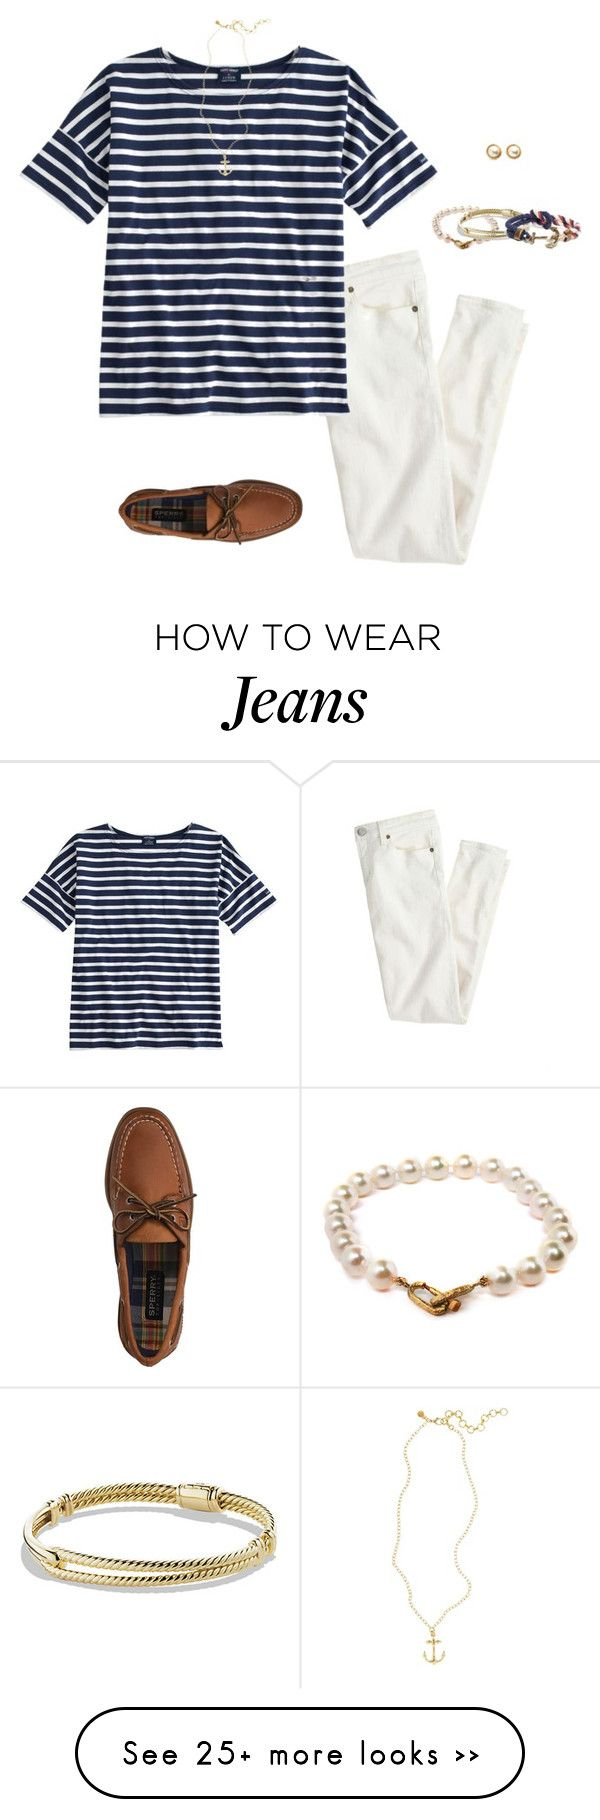 """""""Last Chance to Wear White Jeans"""" by mj-allie on Polyvore featuring J.Crew, Saint James, Sperry Top-Sider, Kate Spade, Brooks Brothers, Pearls Before Swine and David Yurman"""